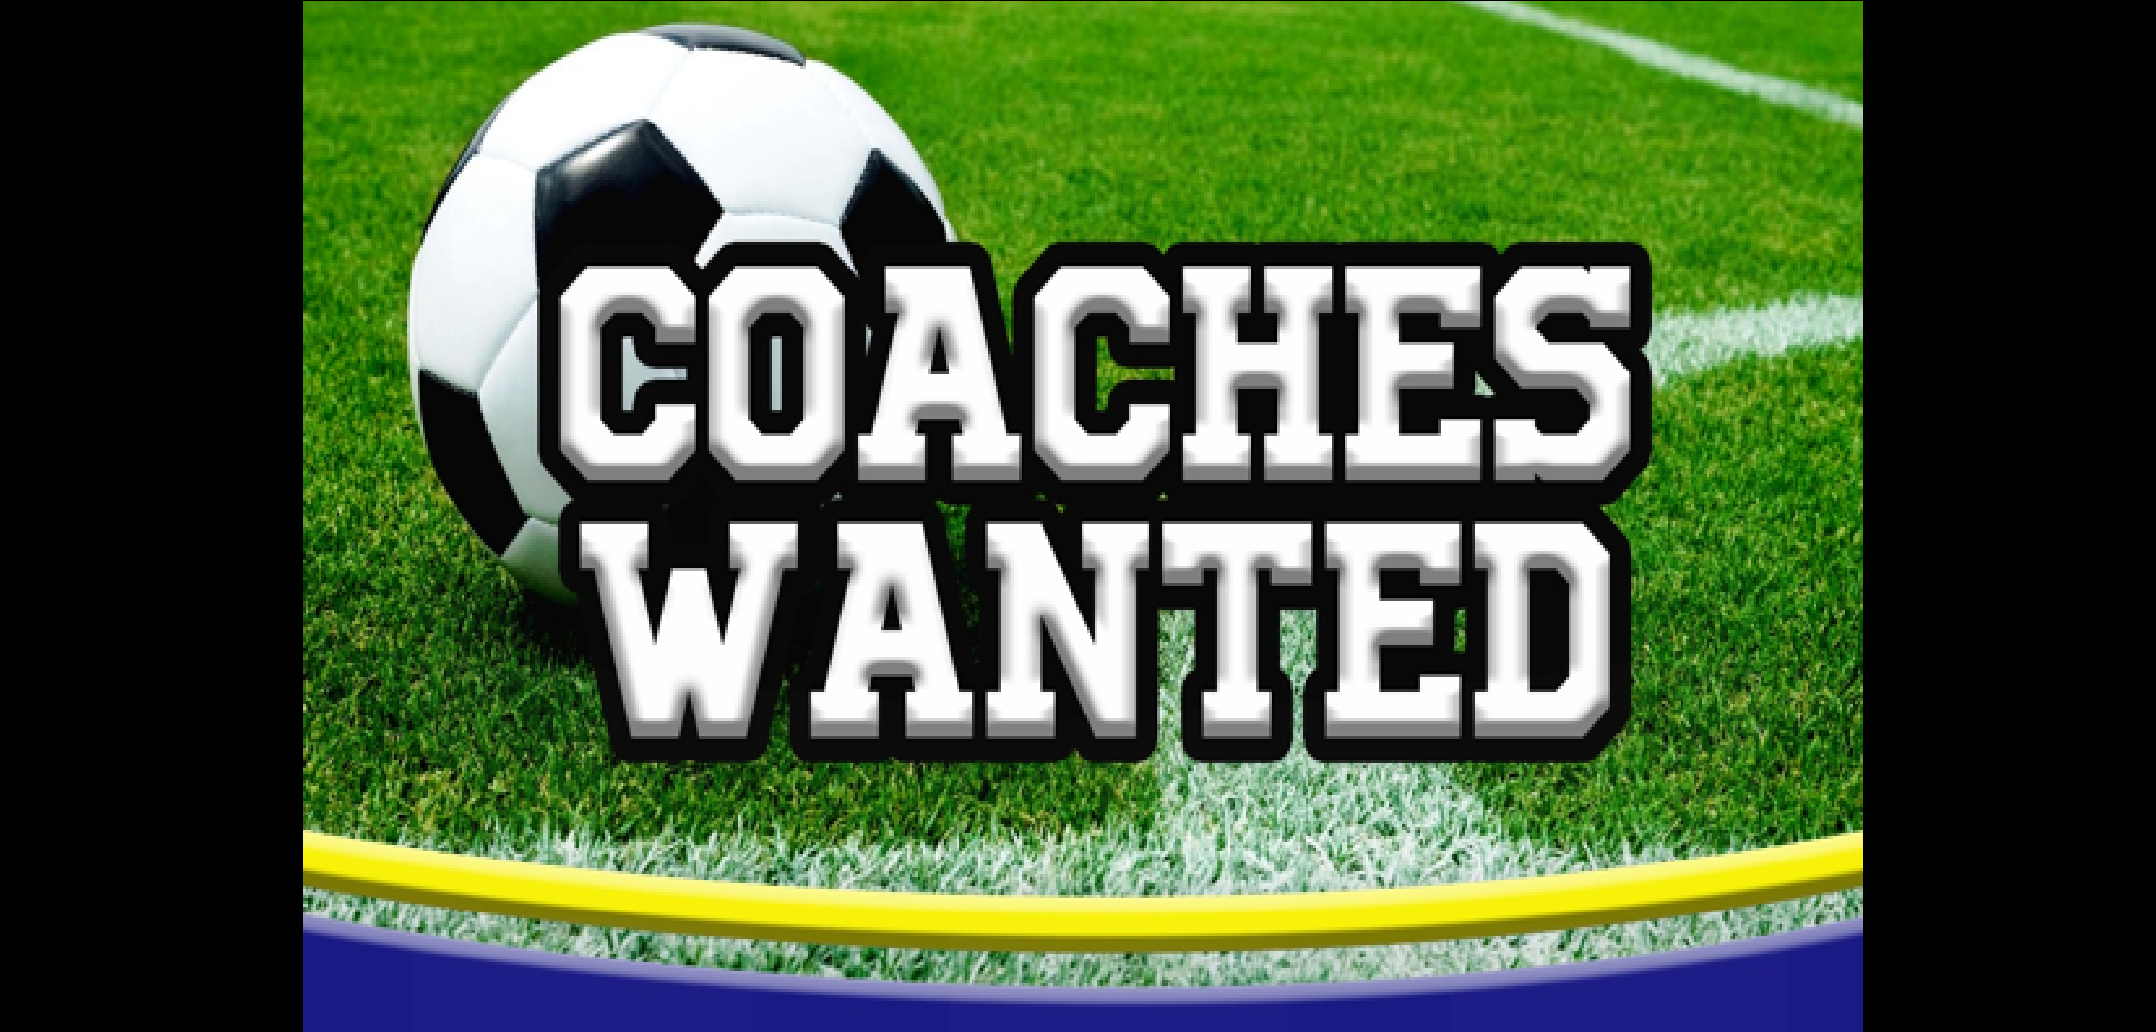 Coaches wanted banner resize